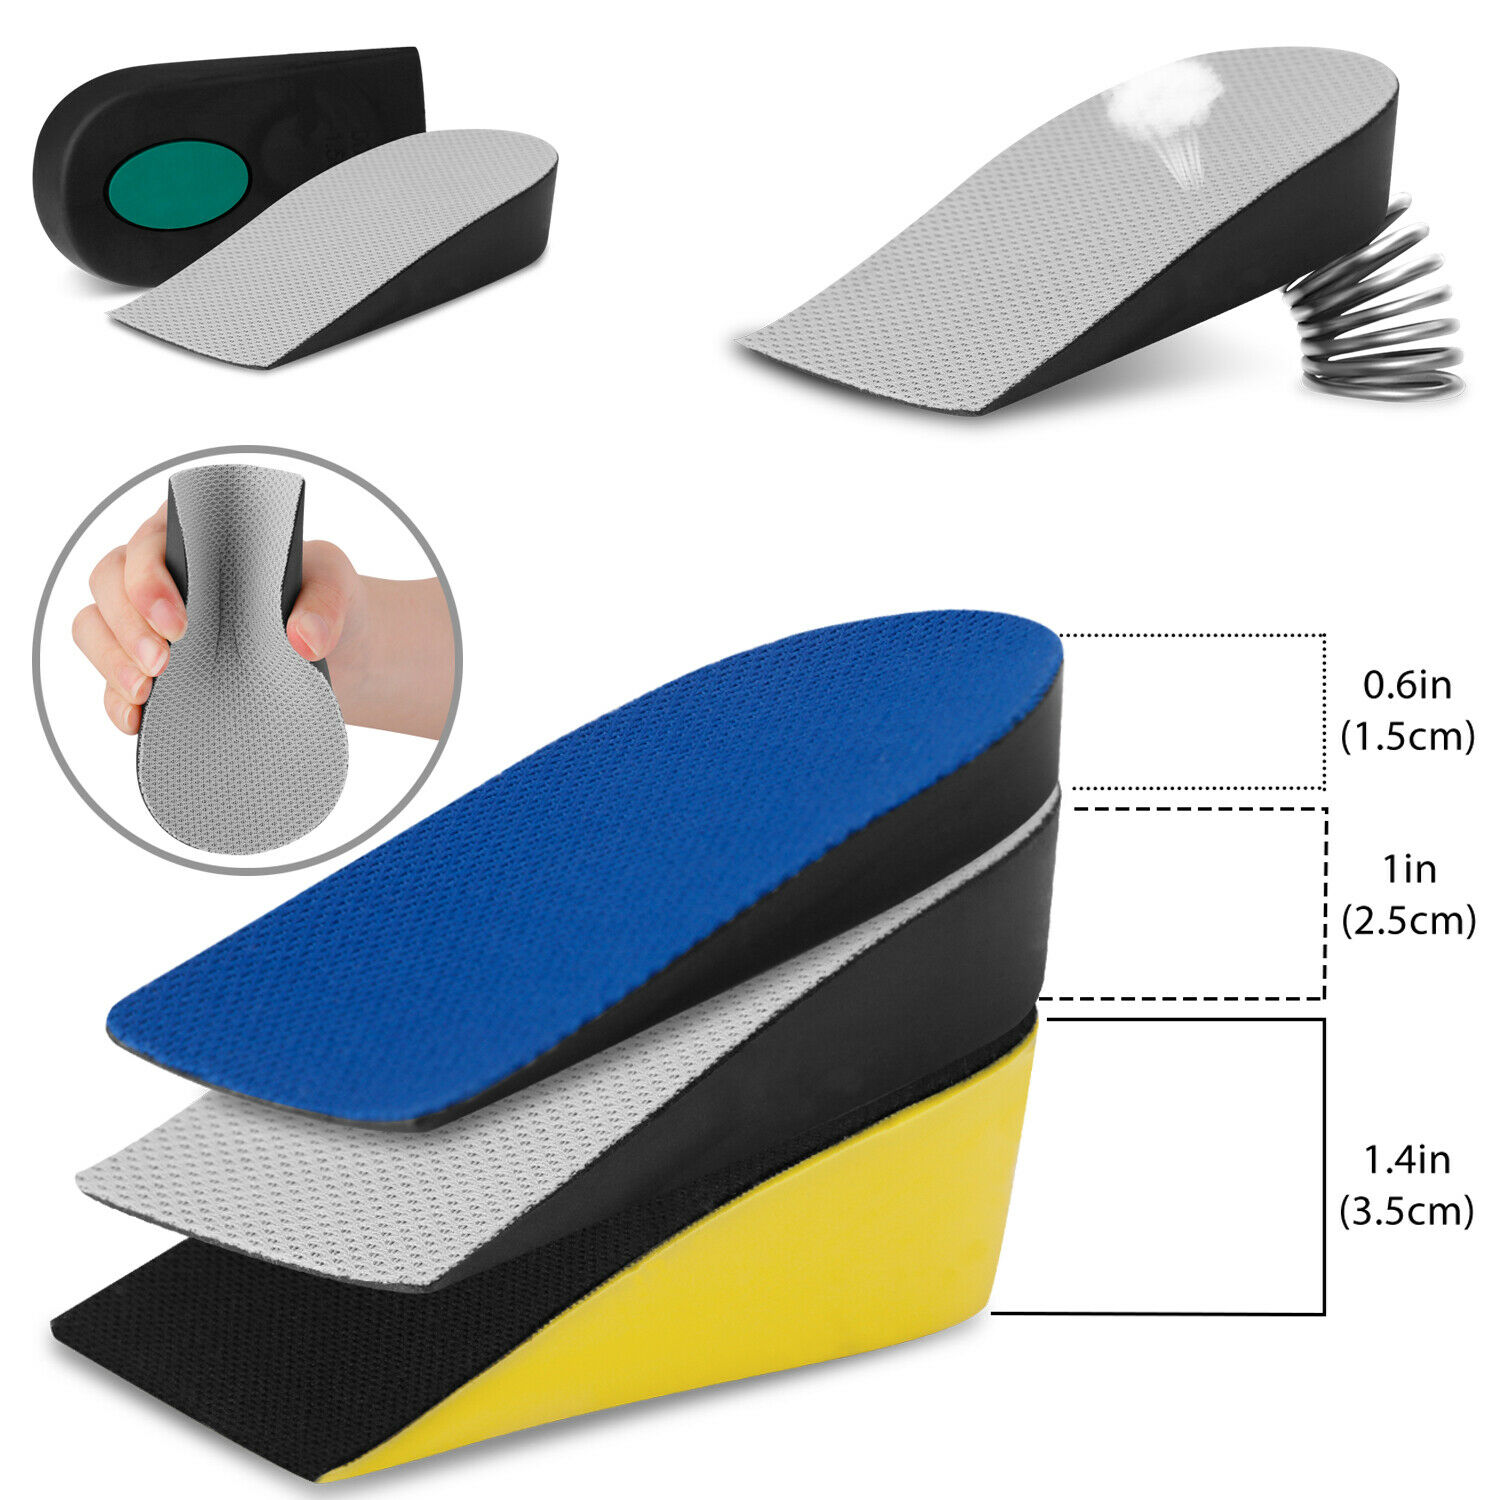 Lady Heel Lift Taller Shoe Inserts Height Increase Pads Silicone Insoles X0 I0G0